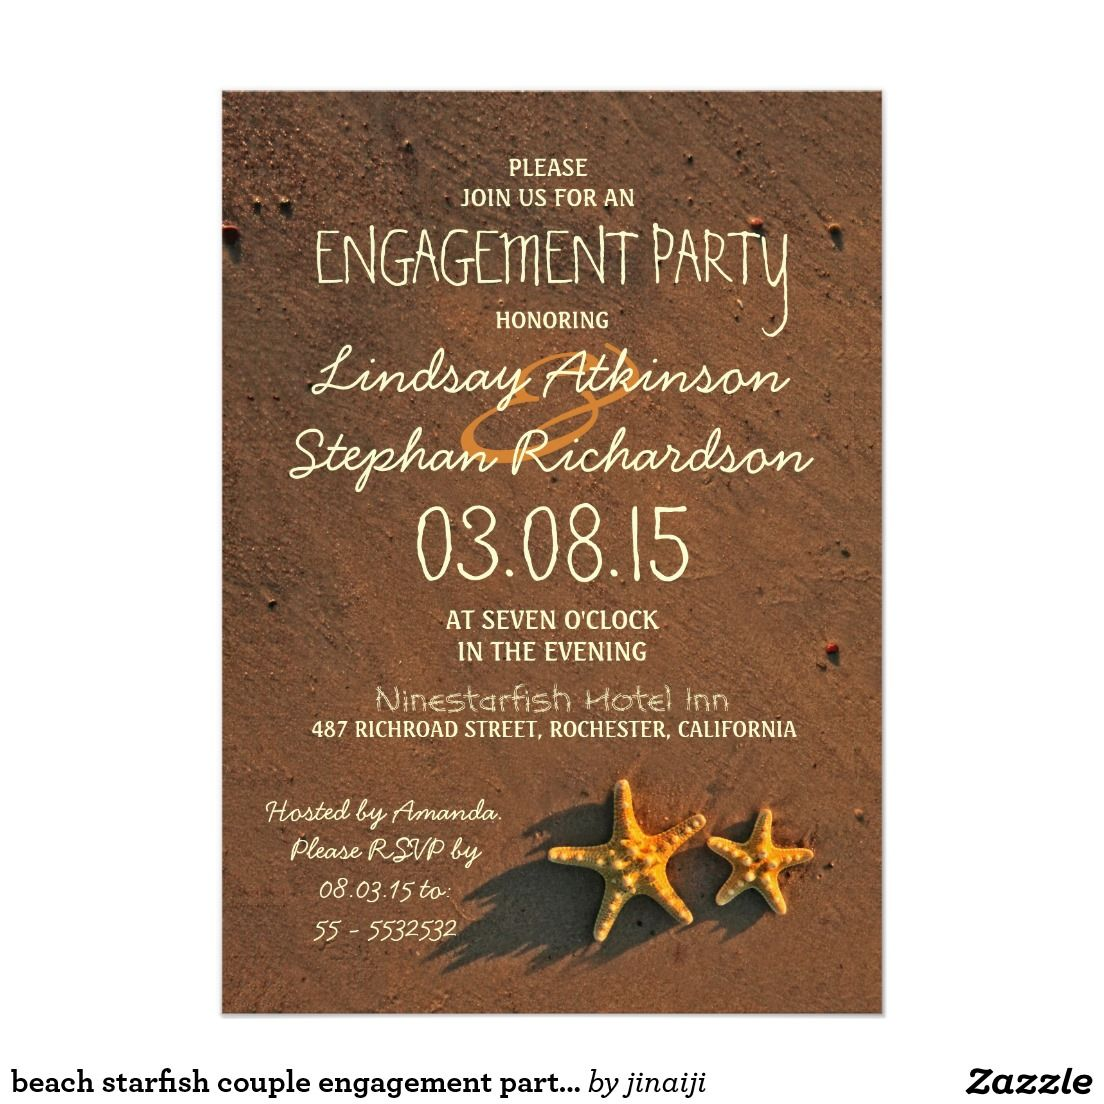 Beach starfish couple engagement party invitations | Engagement ...